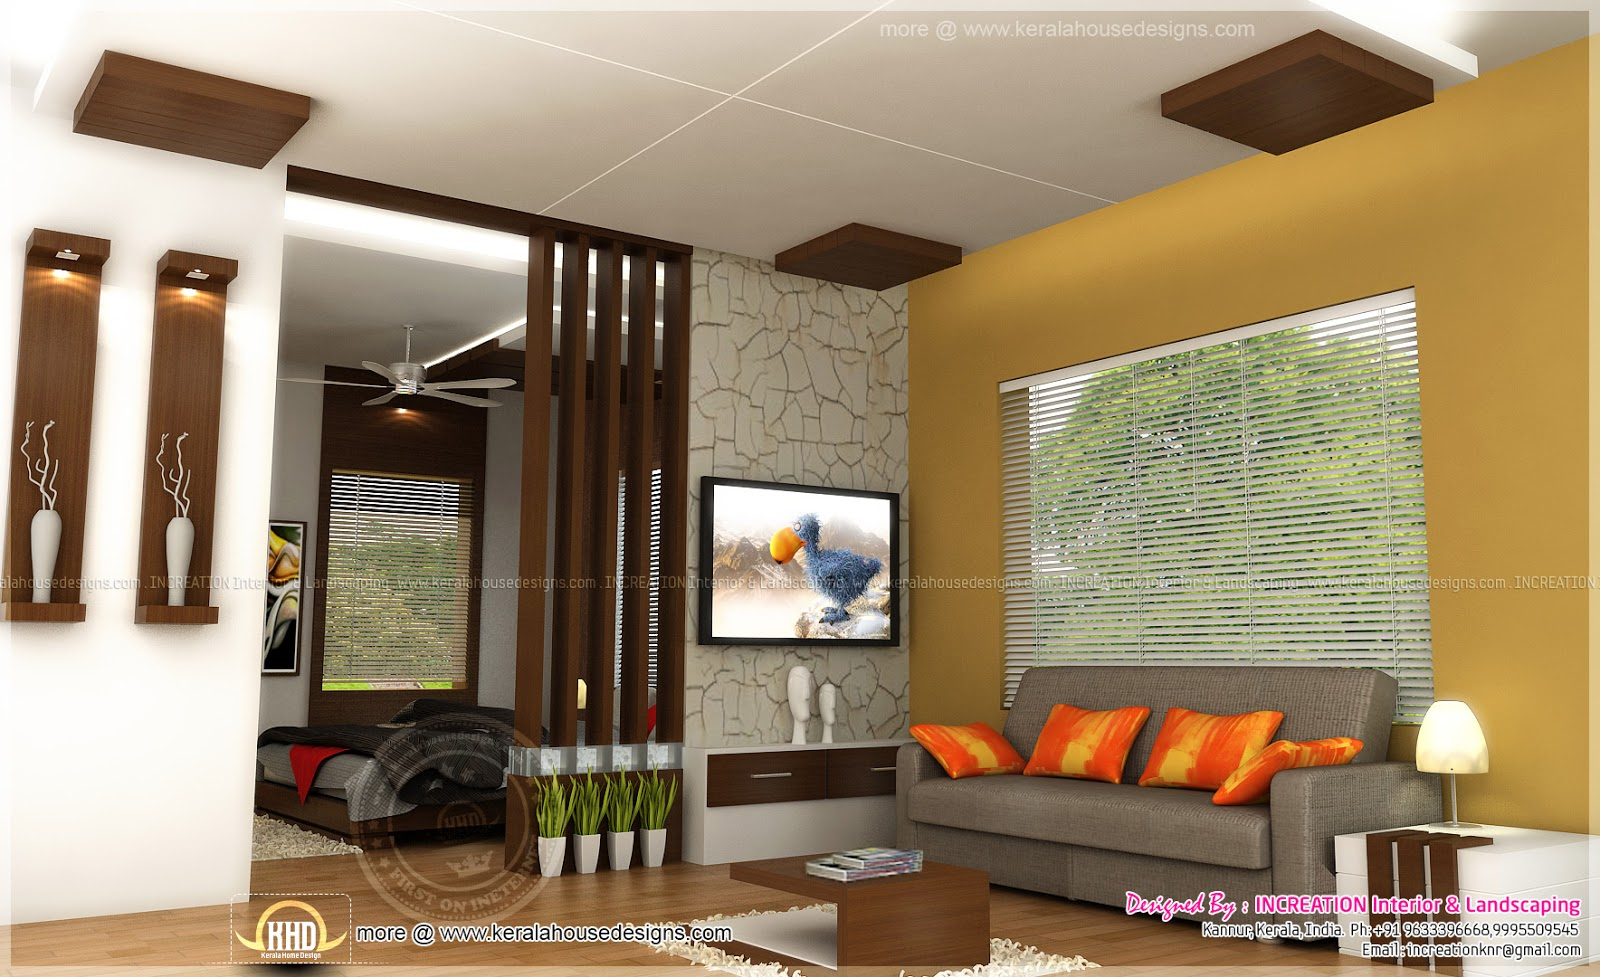 Inside House Ideas Interior Designs From Kannur Kerala Kerala Home Design